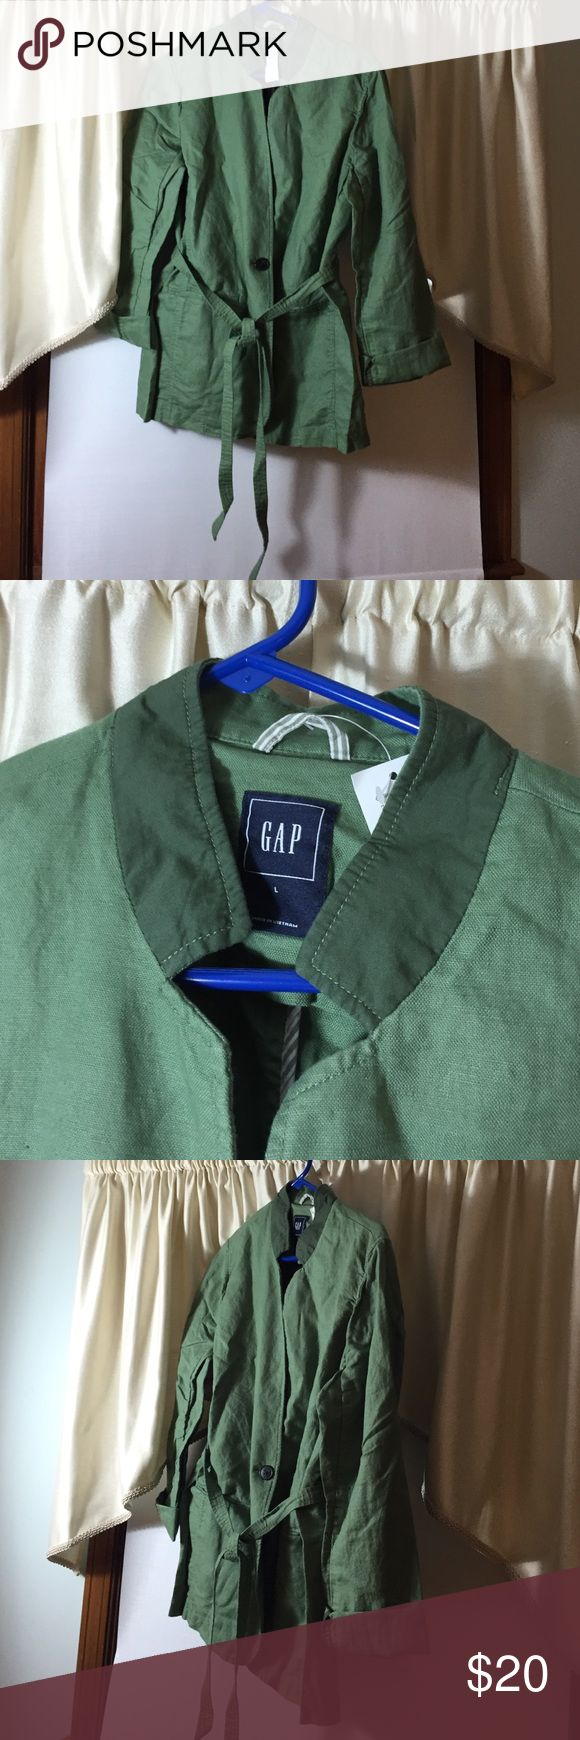 MArked Down!!! ... NWT--beautiful green GAP jacket Brand new --gorgeous shade of green--jacket GAP Jackets & Coats Jean Jackets